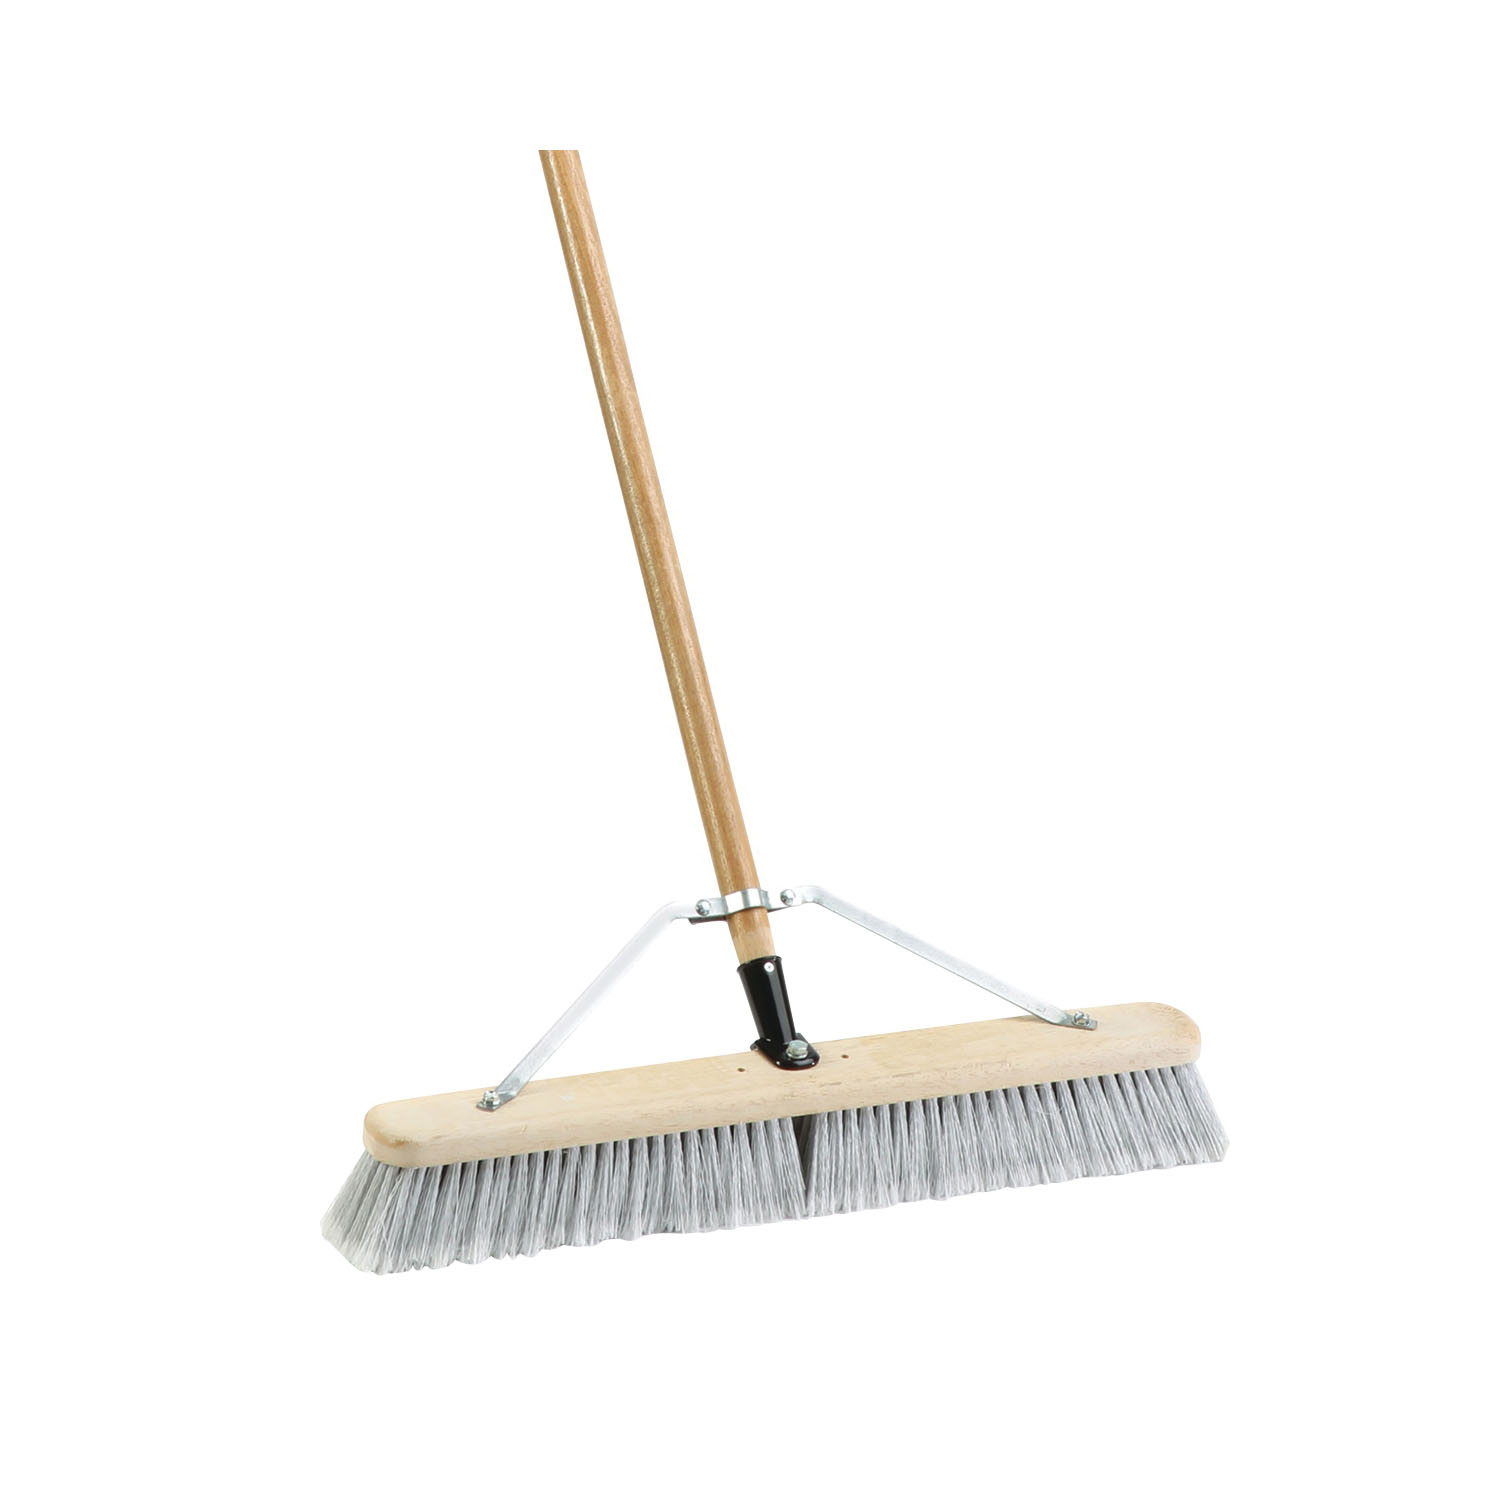 Picture of Simple Spaces 93150 Push Broom, 3 in L Trim, Fine Flagged Synthetic Bristle, Hardwood Handle